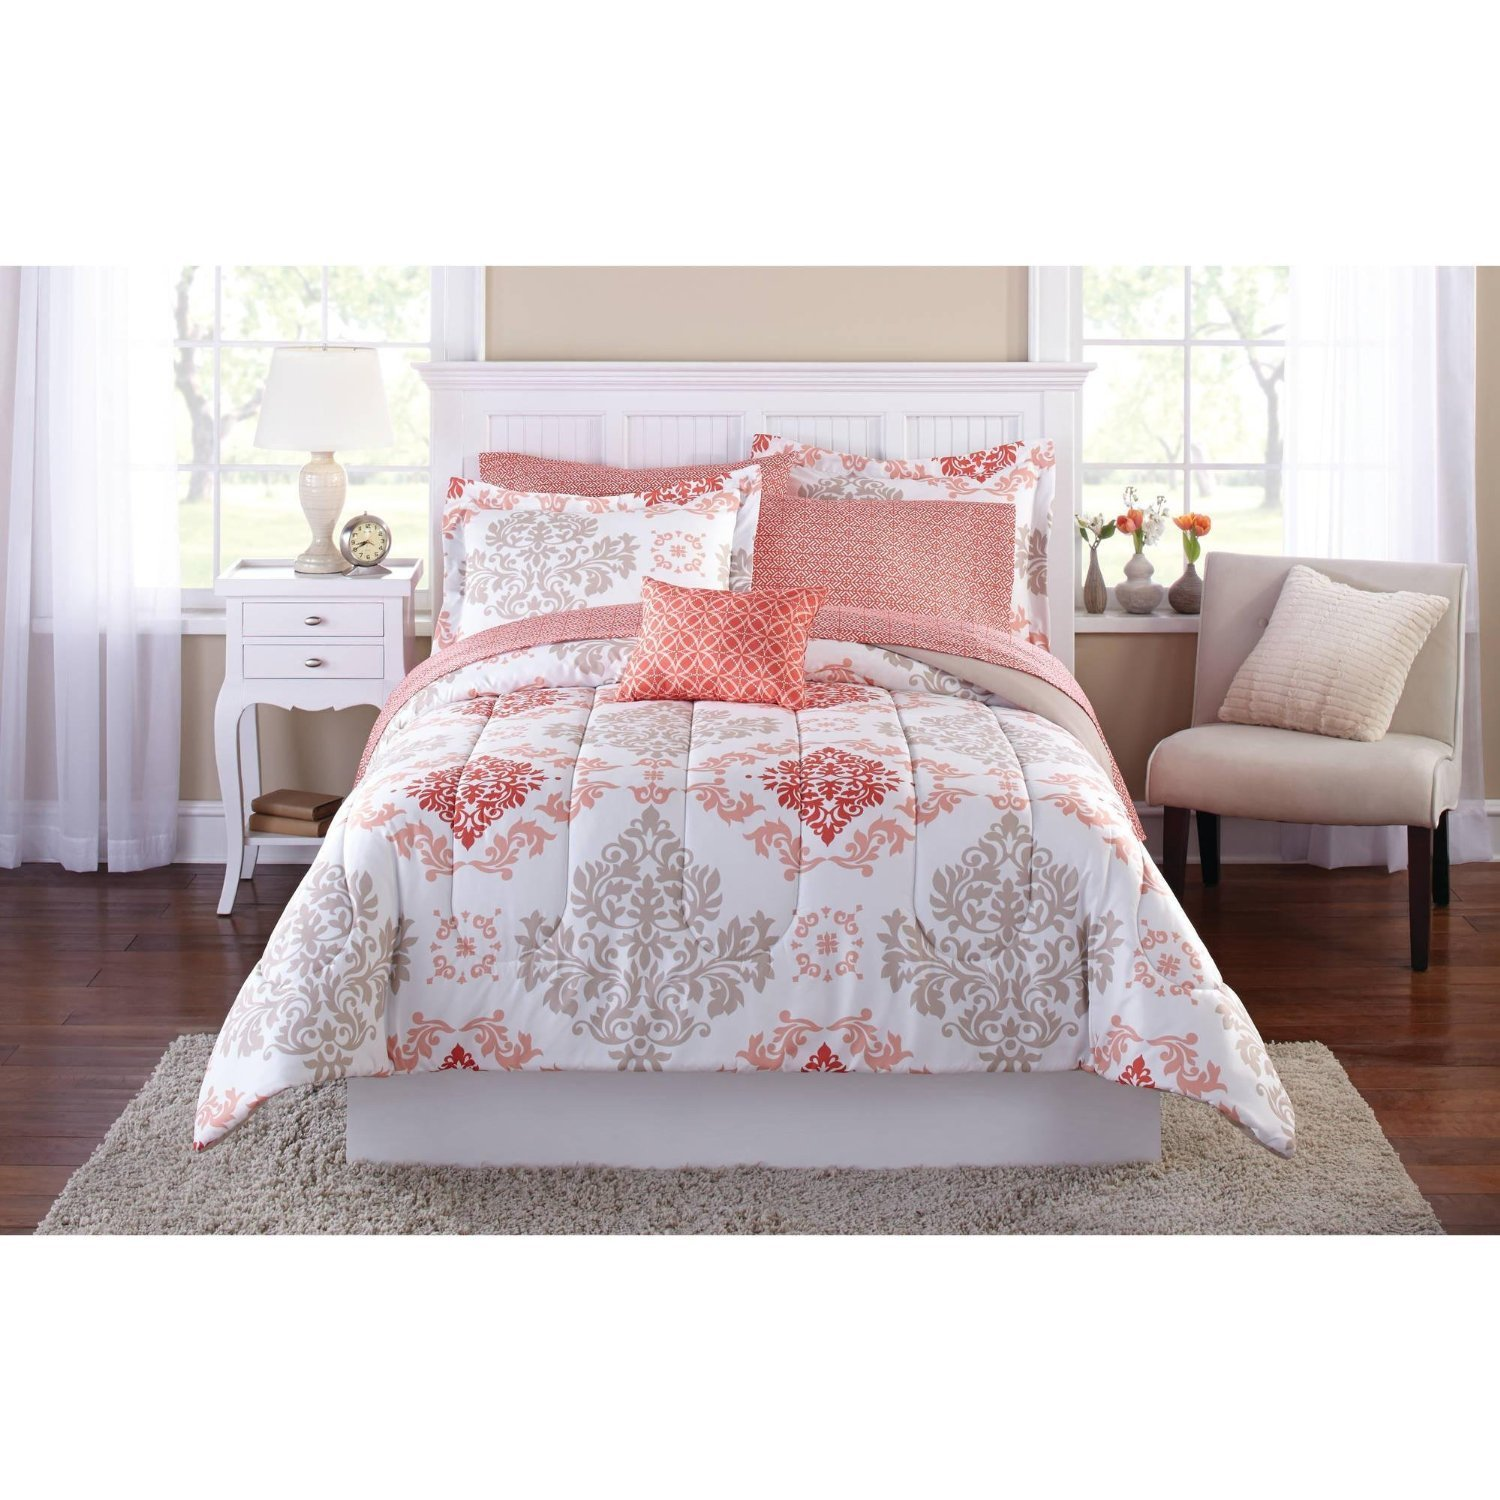 Teen Boys And Teen Girls Bedding Sets  Ease Bedding With Style-9283